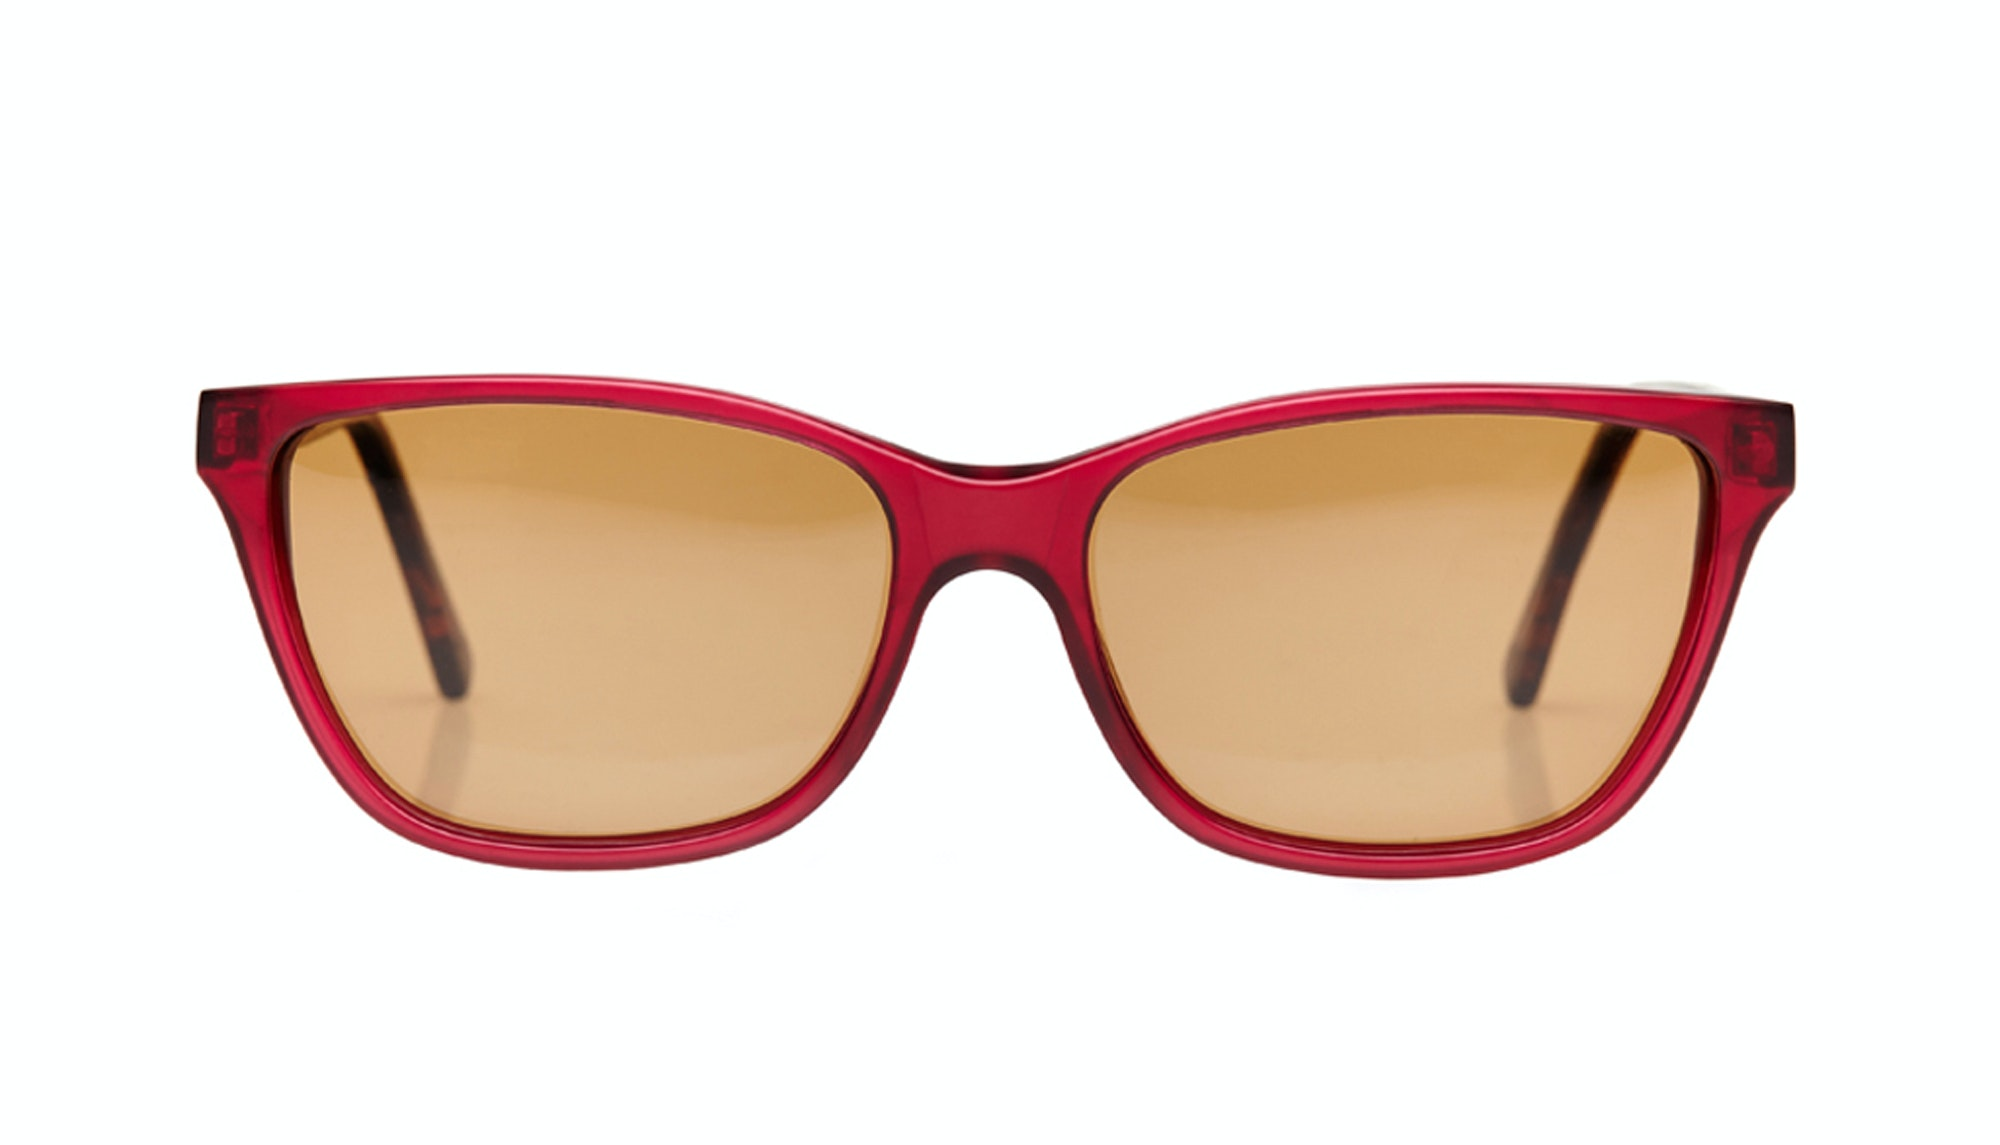 Affordable Fashion Glasses Cat Eye Sunglasses Women Honeybadger Frosted Cherry